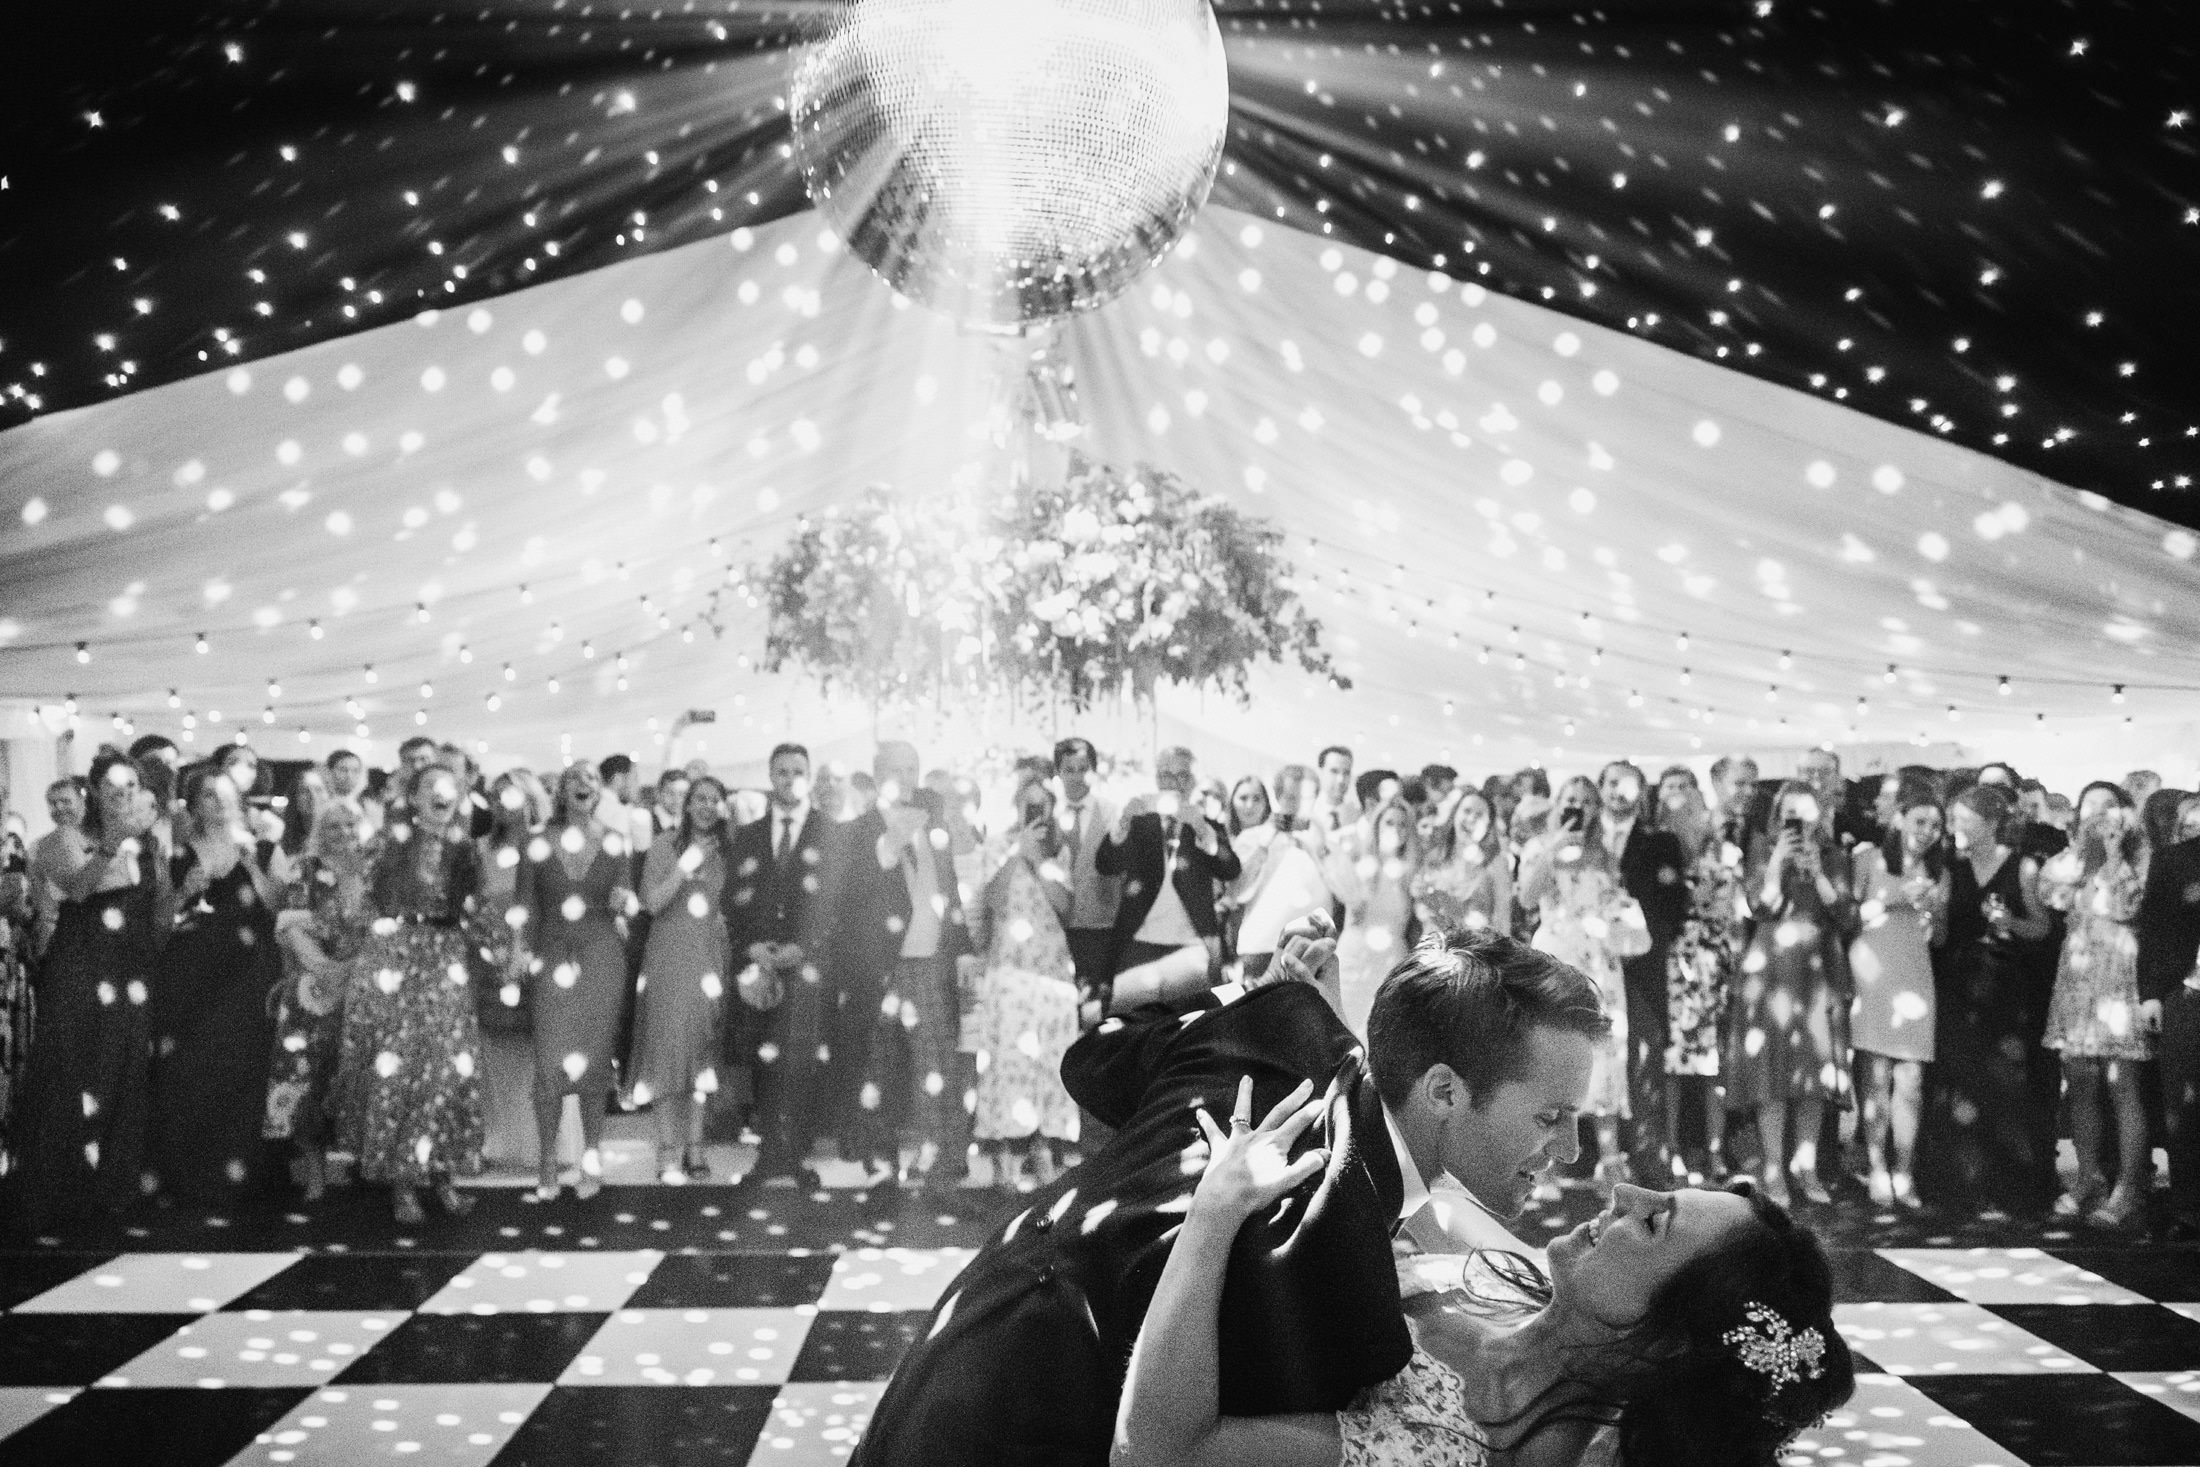 bride and groom first dance, groom dipping the bride with mirror ball